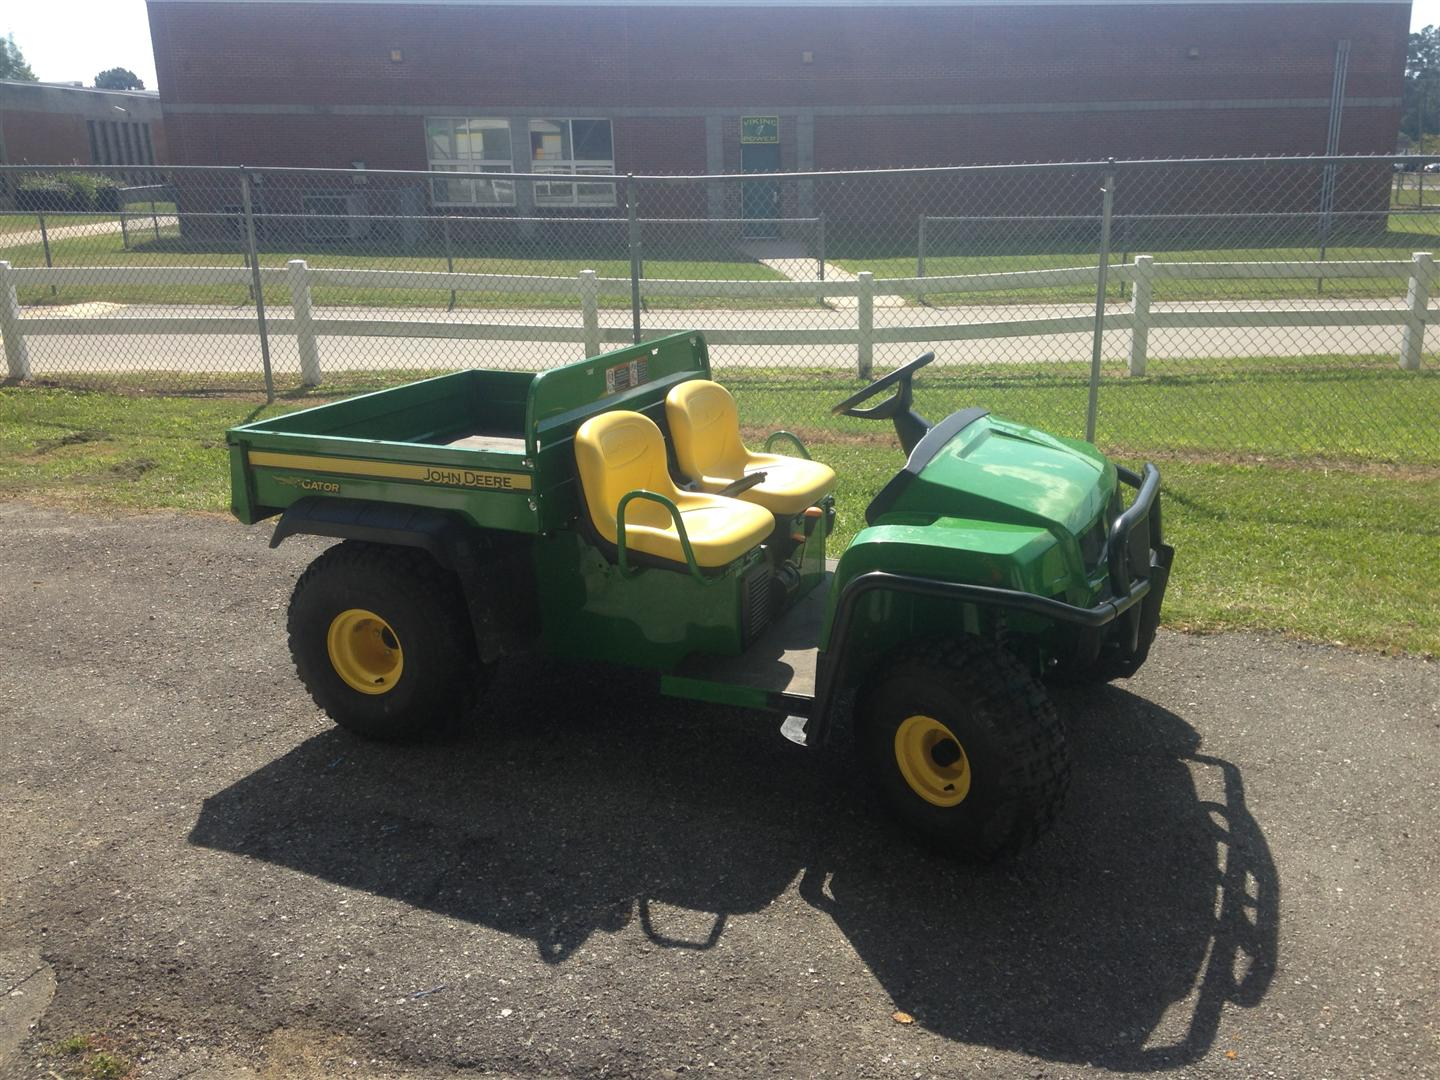 Gator Purchased by WOHS and Booster Club